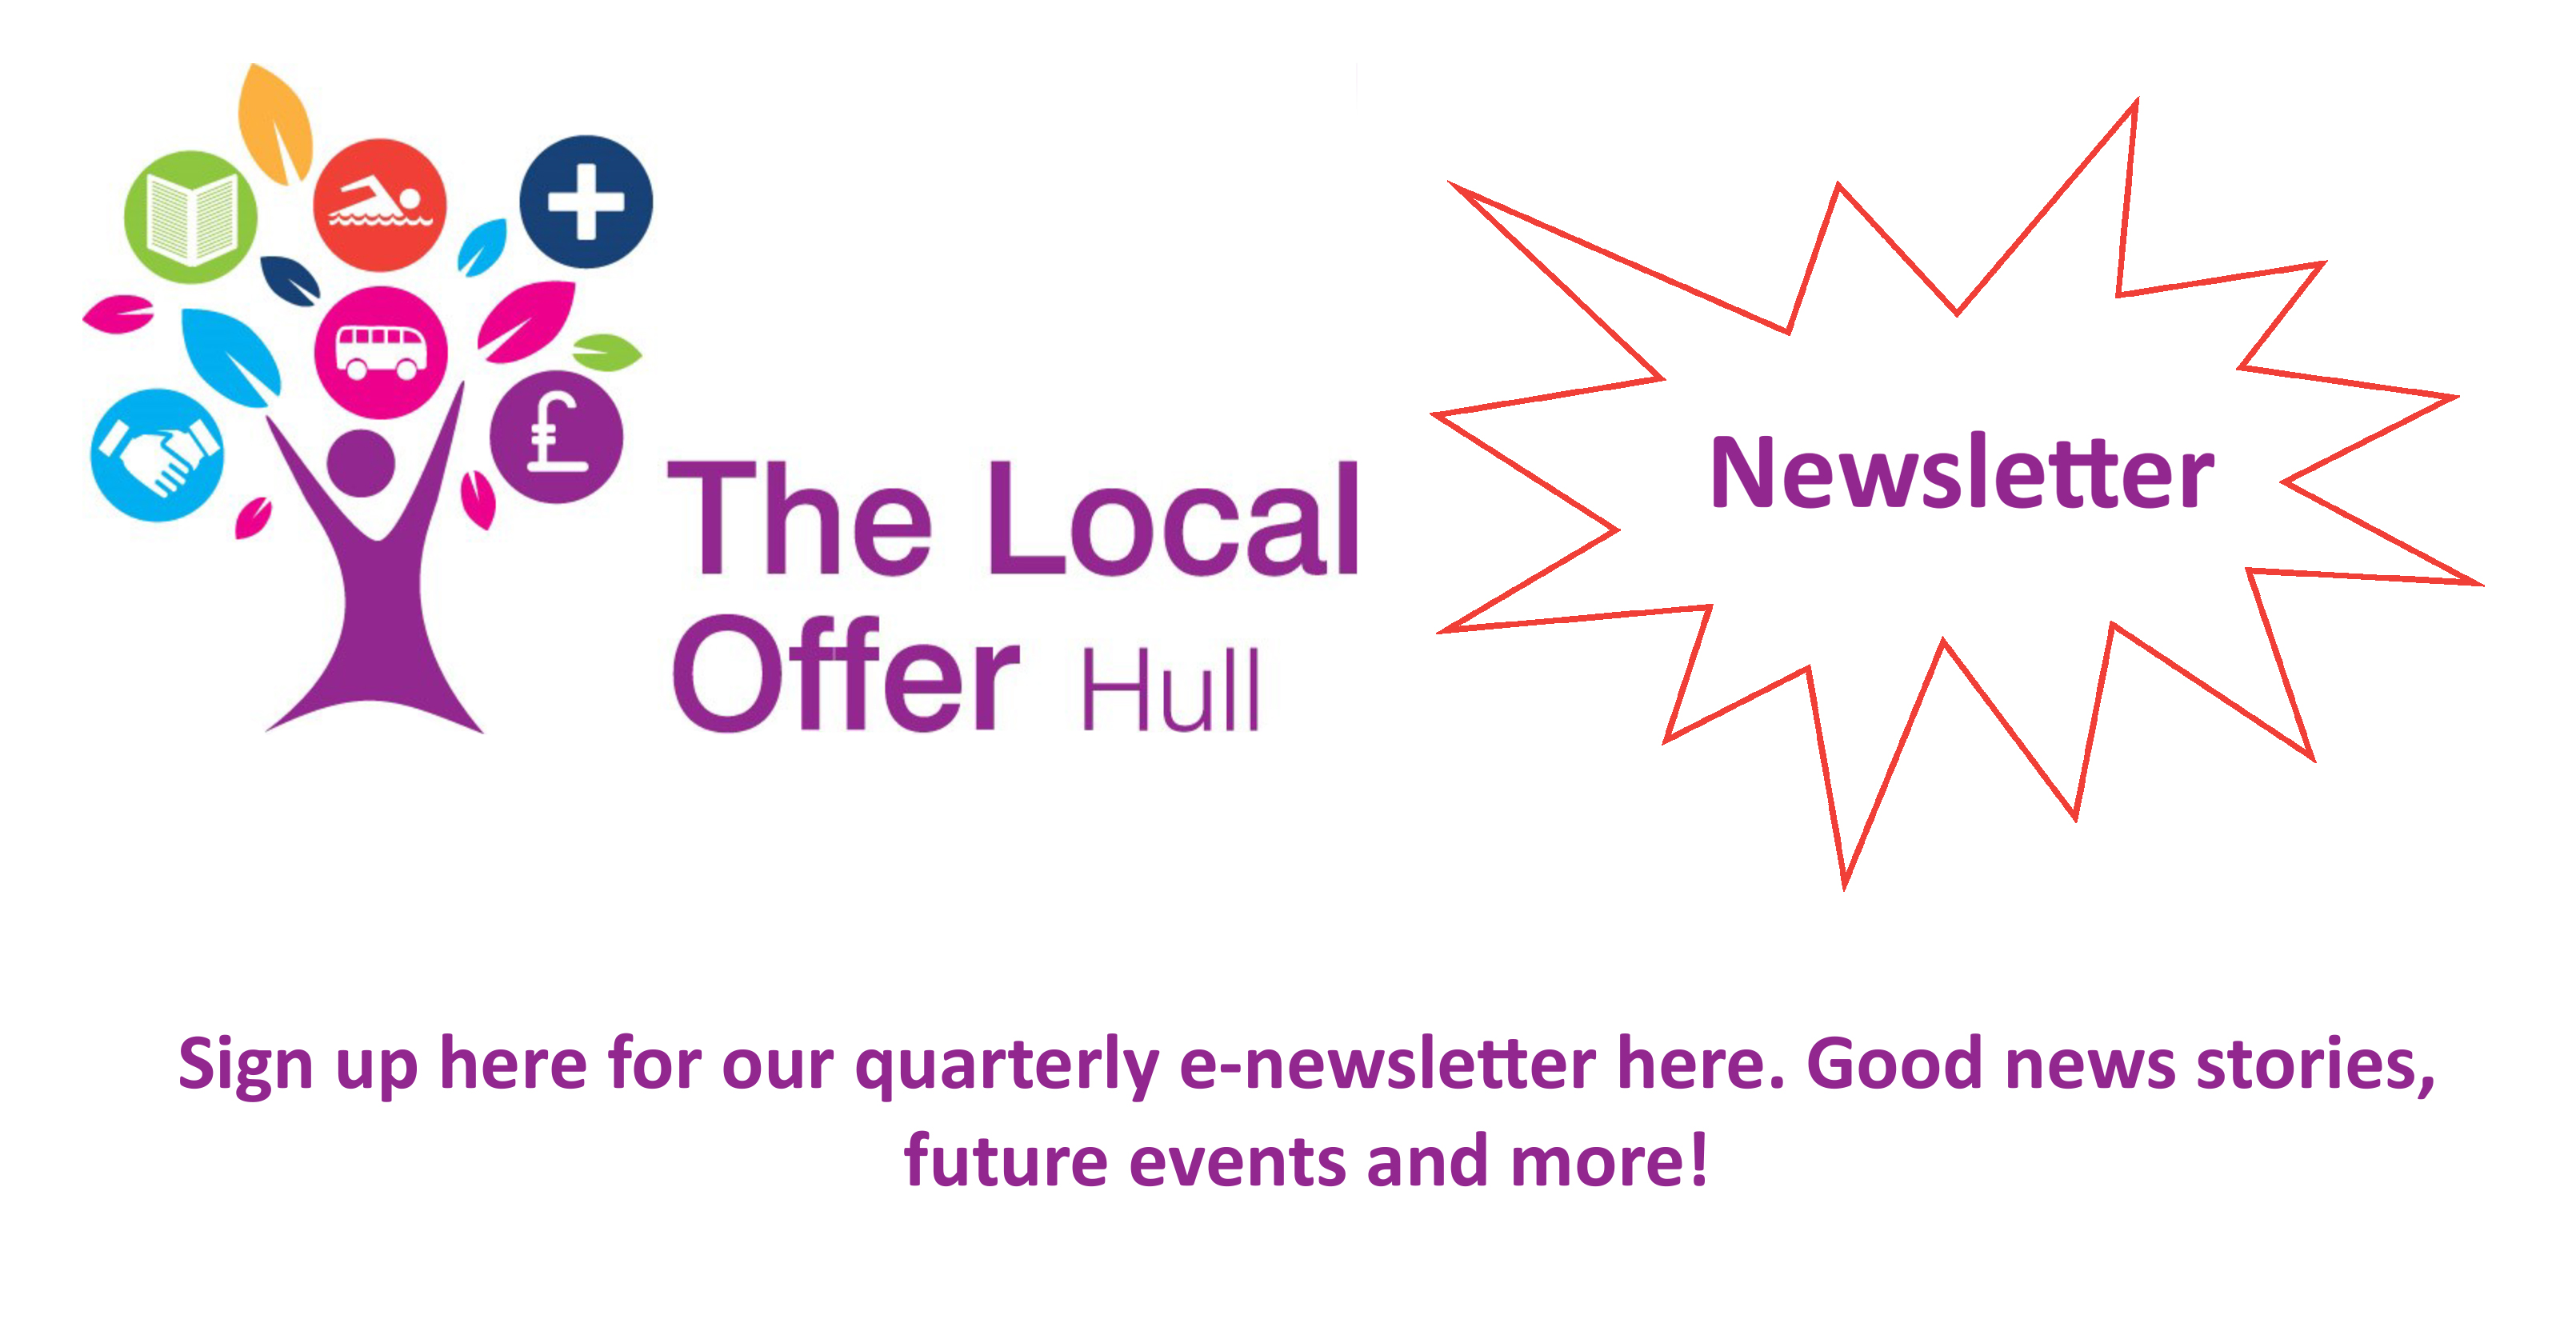 Local offer newsletter